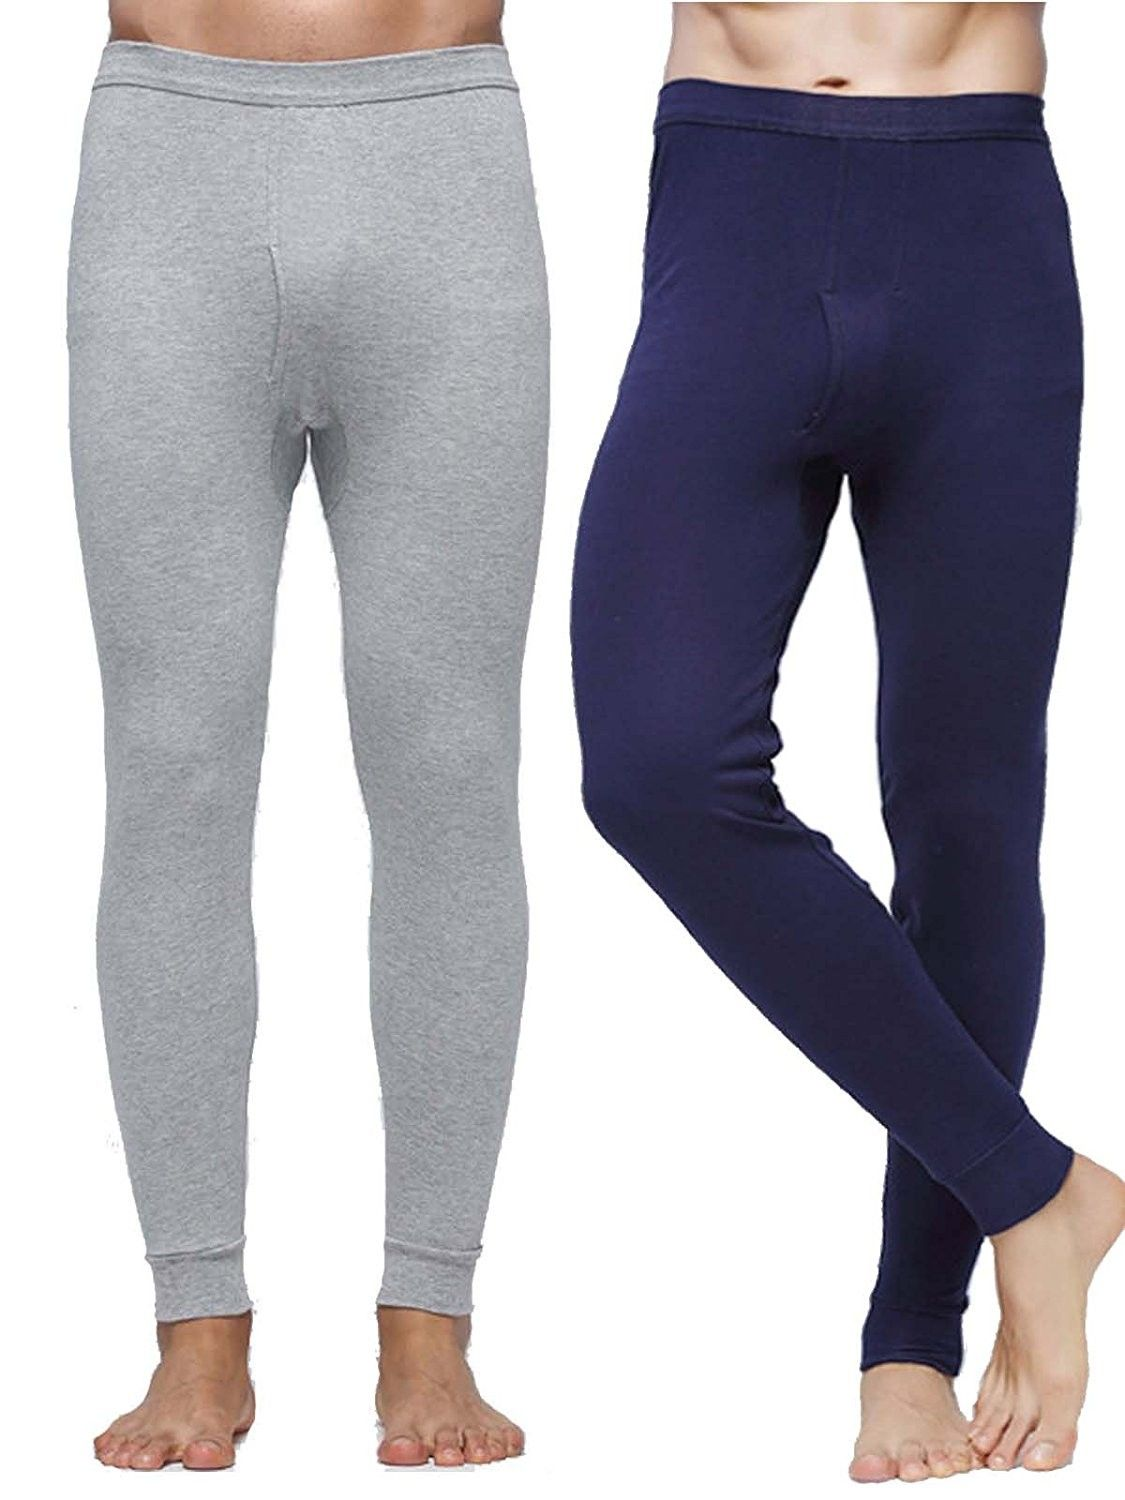 7af53410d591 Men's Clothing, Underwear, Thermal Underwear,Men's Mid Weight Essential  Thermal Pants Cotton Long Johns Bottoms Warm Leggings - Navy+light Grey ...